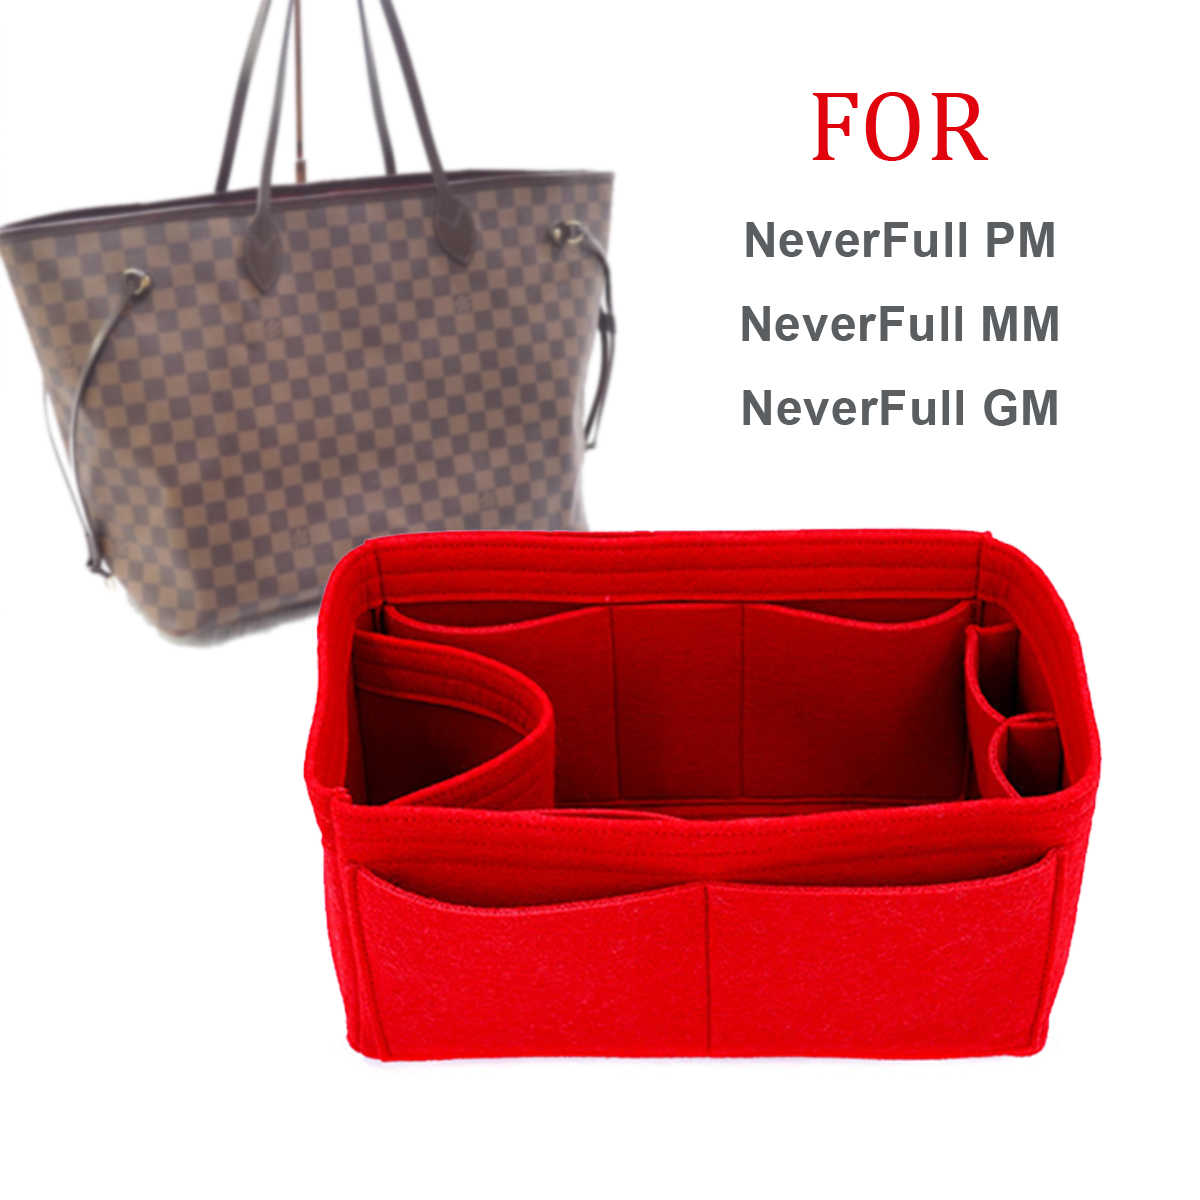 73dde40d84a8 ... SPEEDY 25 30 35 Felt Cloth Insert Bag Organizer Makeup Handbag Organizer  Travel Inner Purse Portable ...